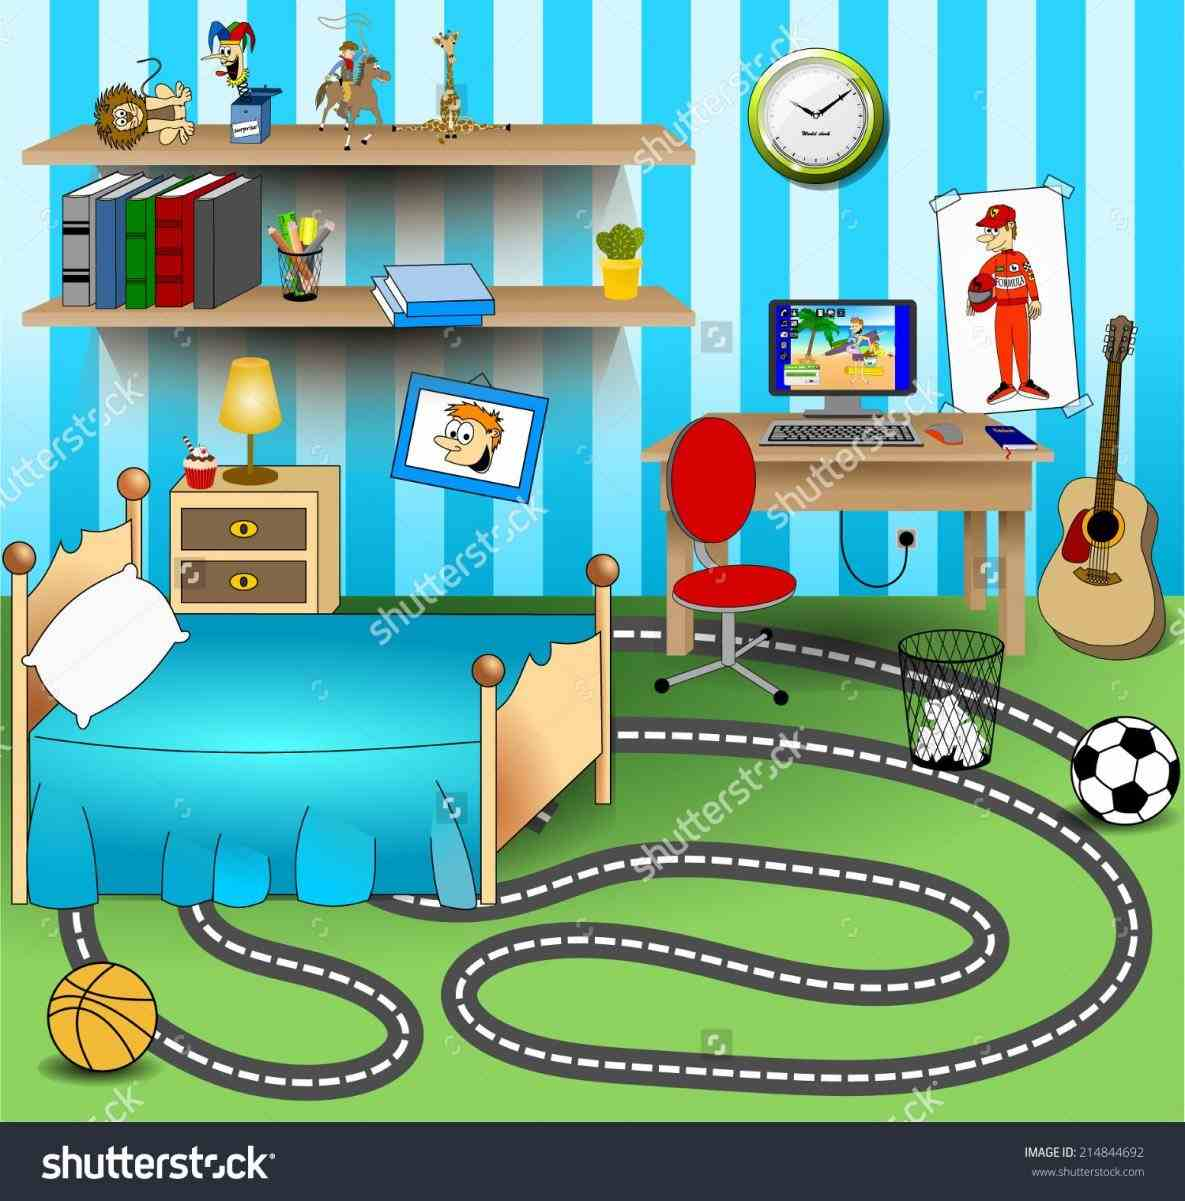 Clipart boys bedroom png black and white Boys Bedroom Cliparts 4 - 1185 X 1201 - Making-The-Web.com png black and white